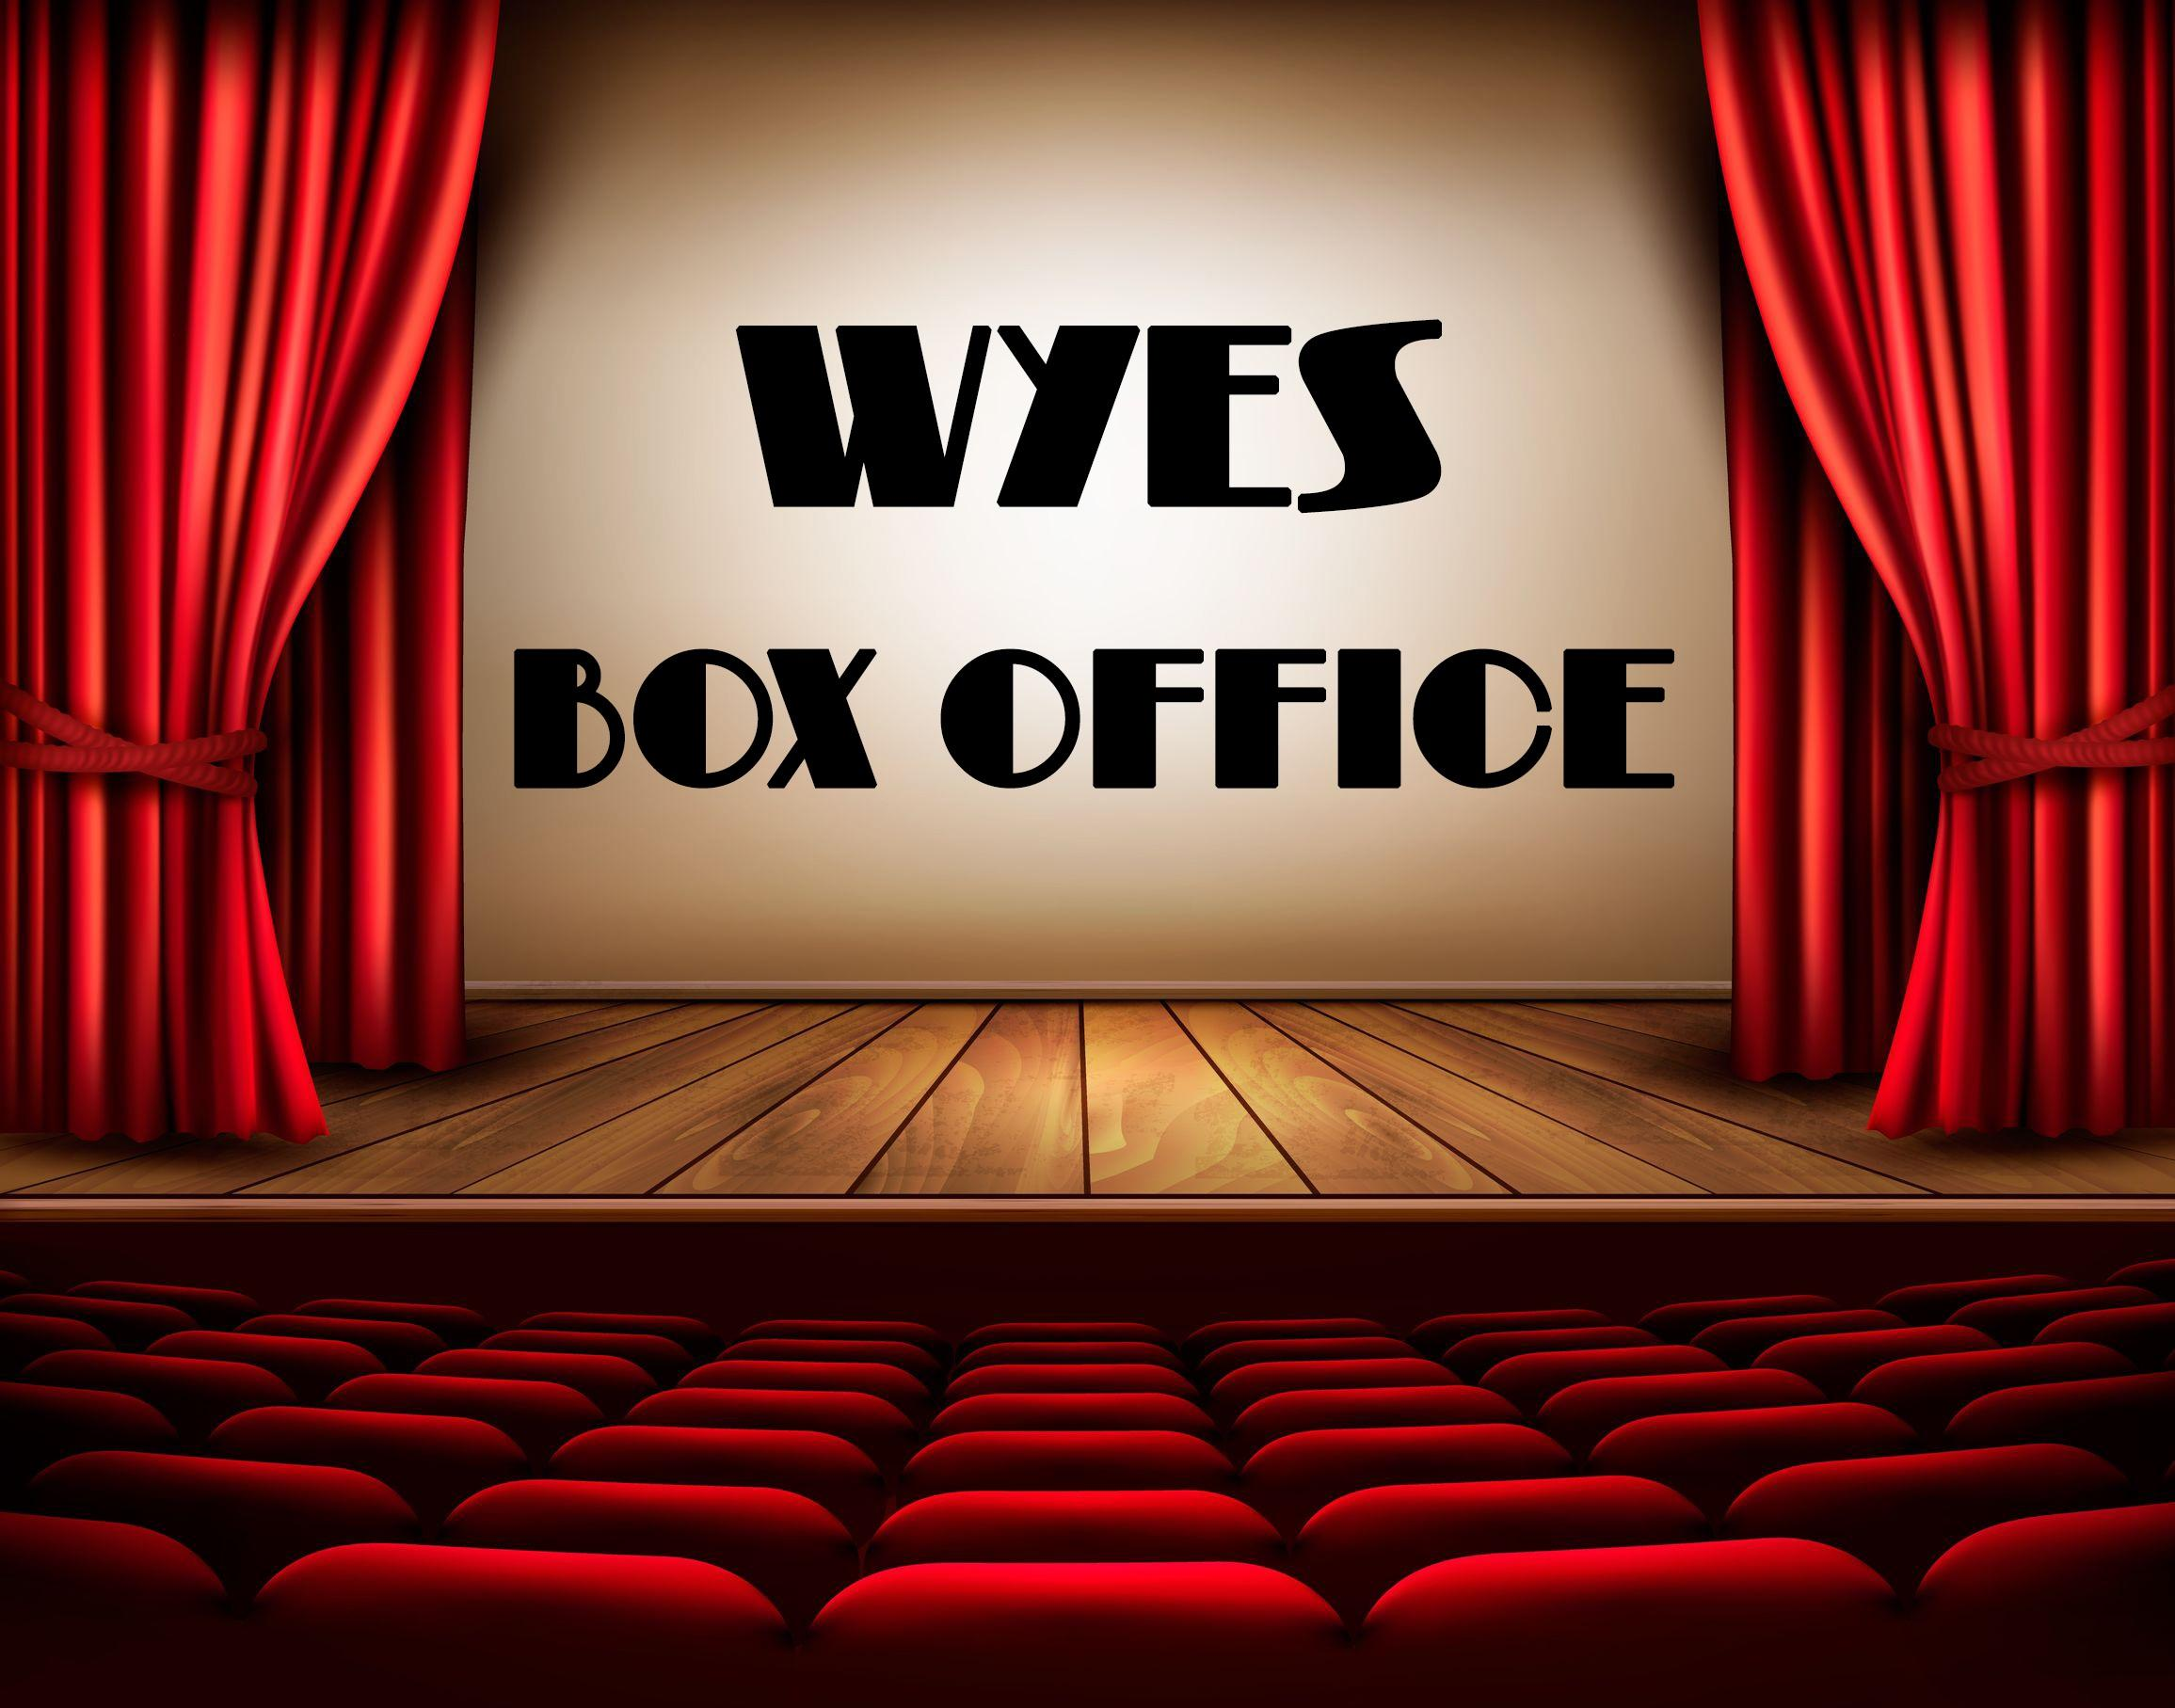 WYES Box Office